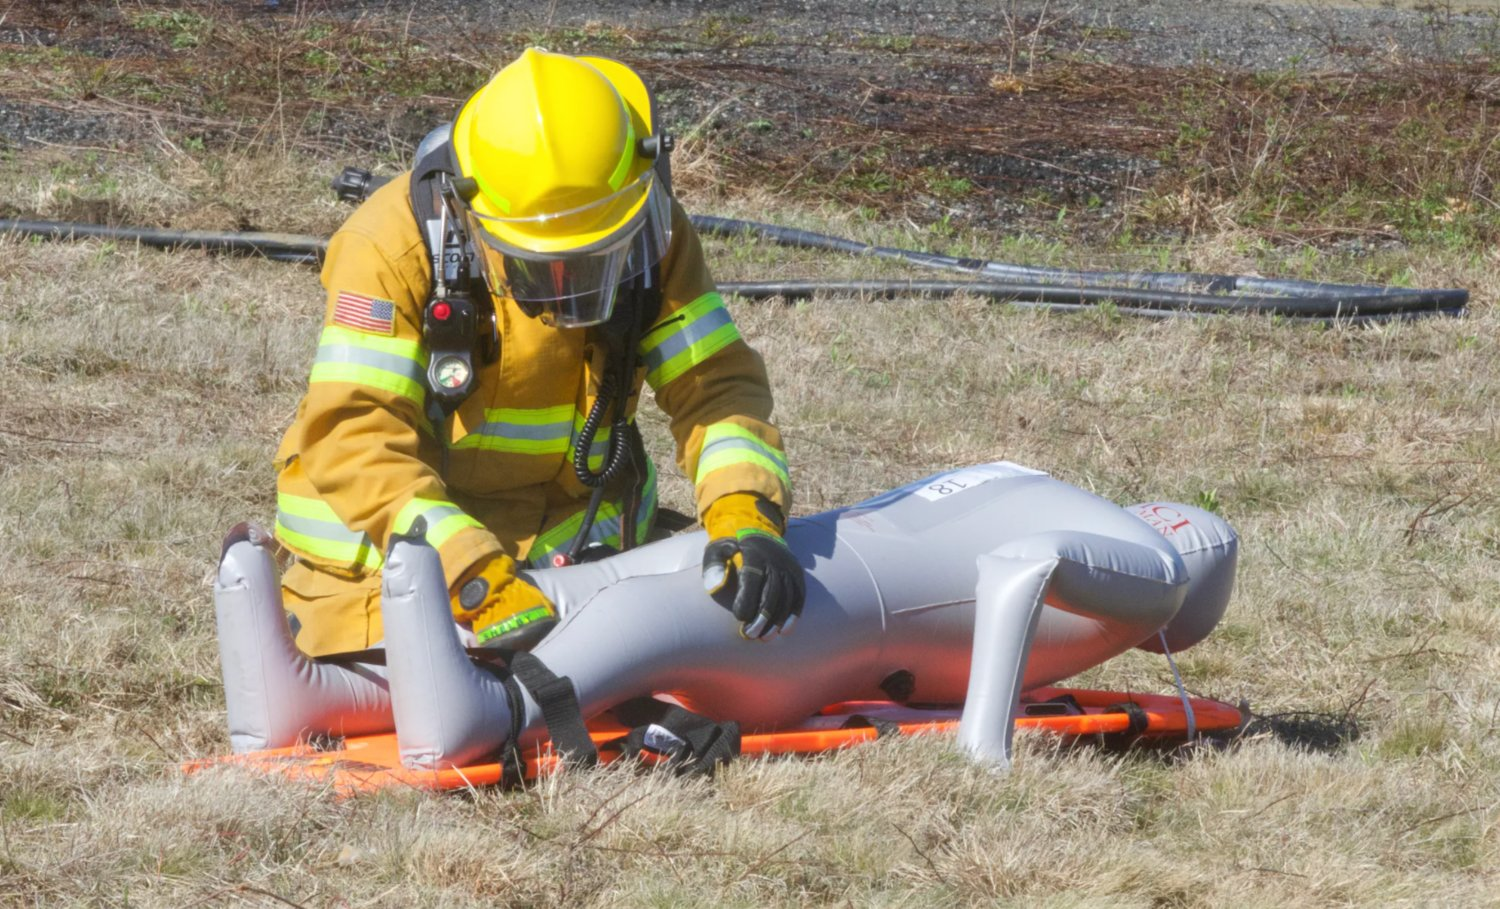 A Nantucket firefighter during an airport emergency response drill Monday.